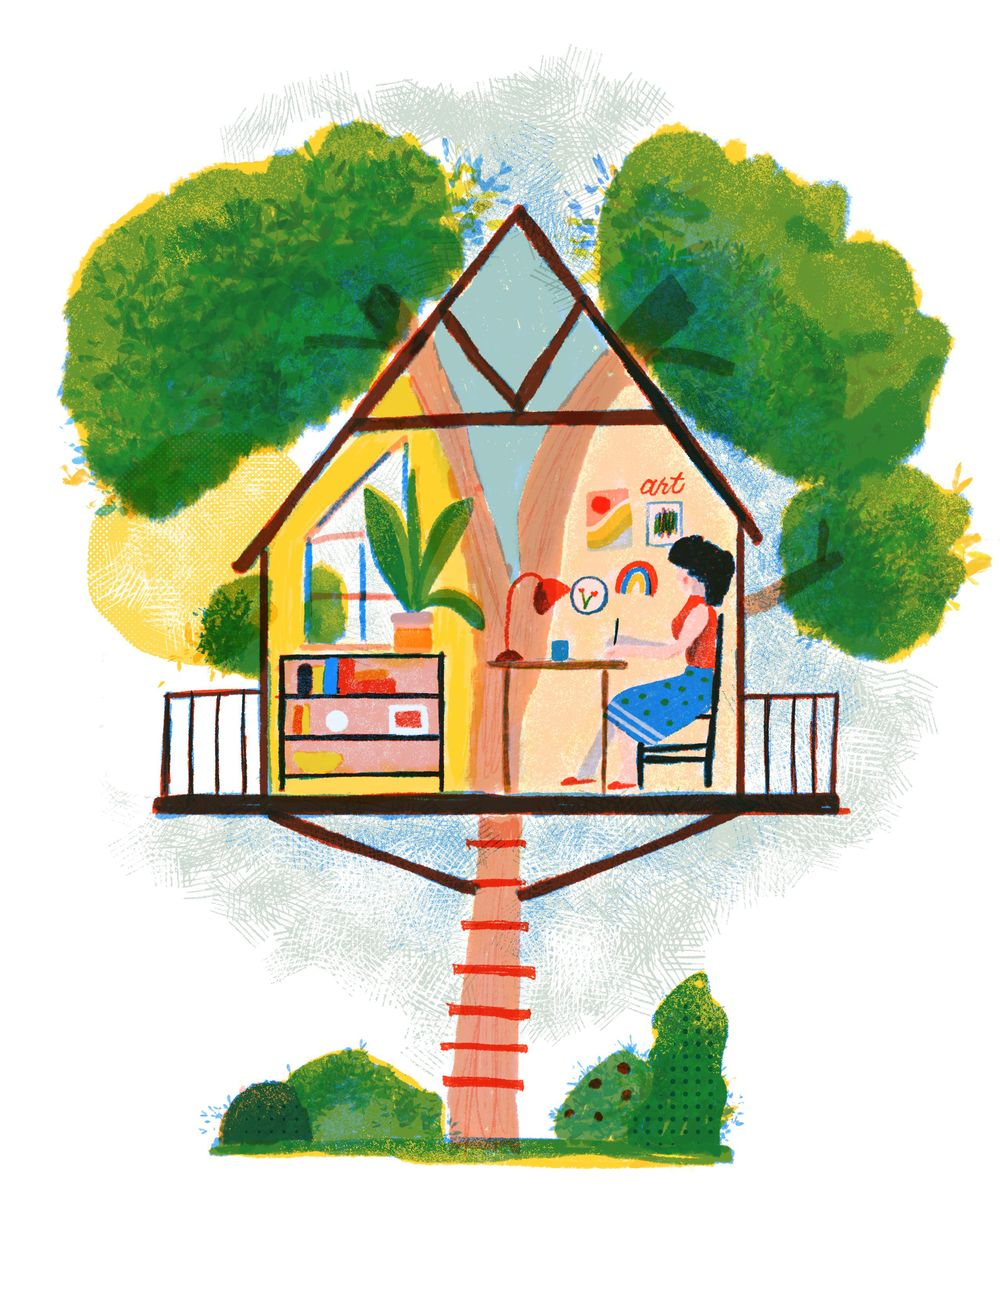 My dream studio: A Tree House - image 5 - student project